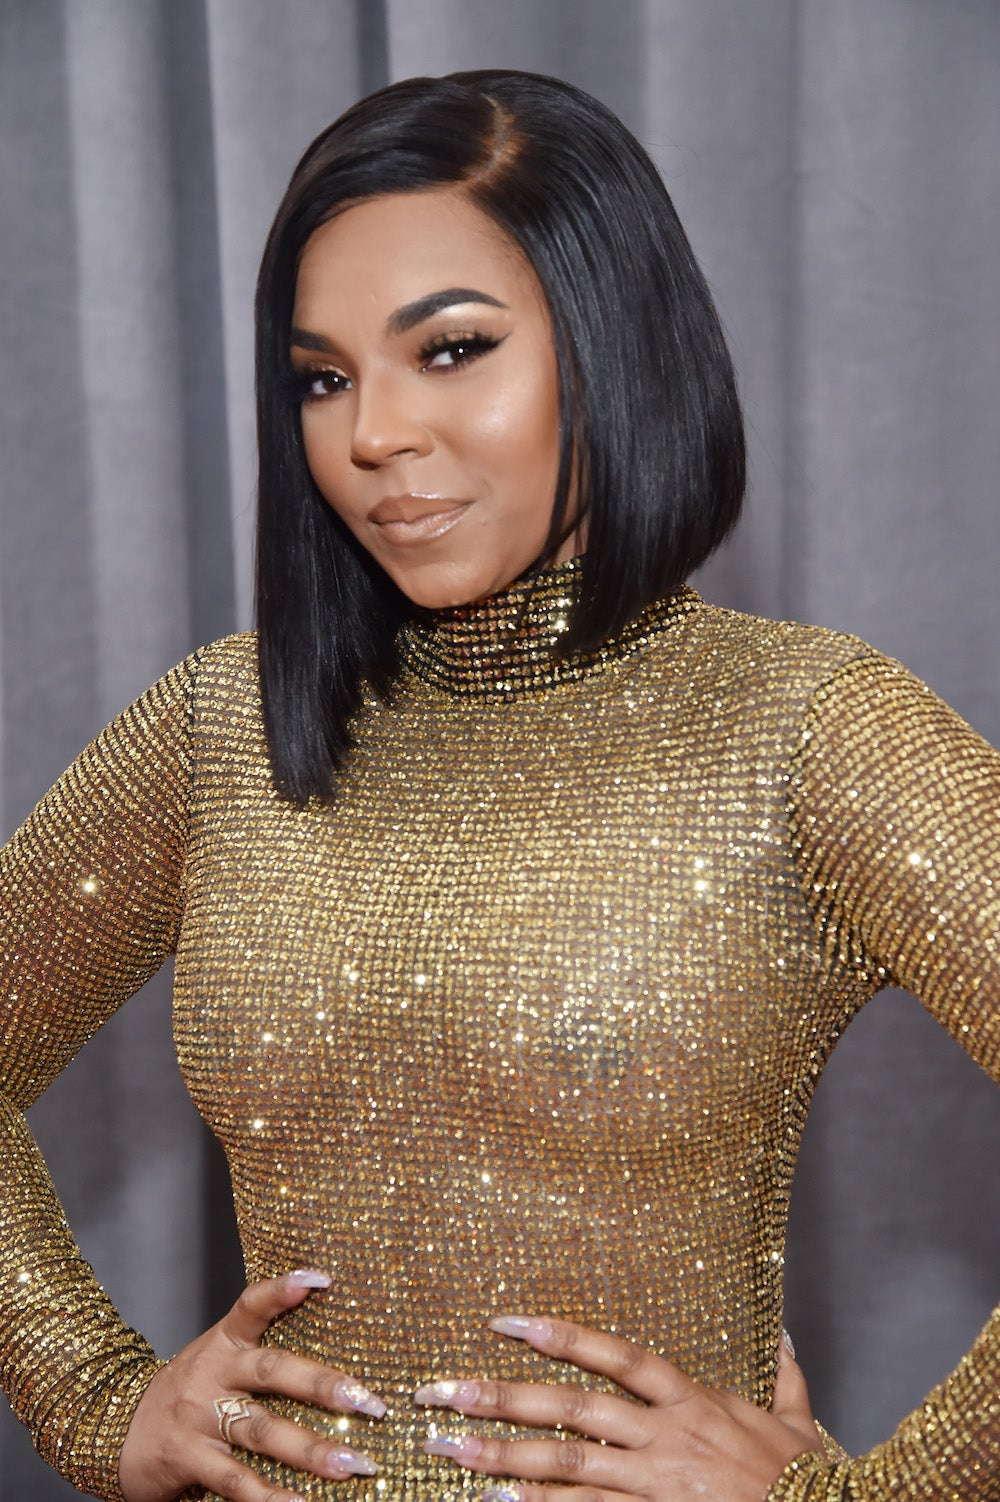 Ashanti Says A Producer Demanded $45K To Work On Her Album After She Refused To Shower With Him